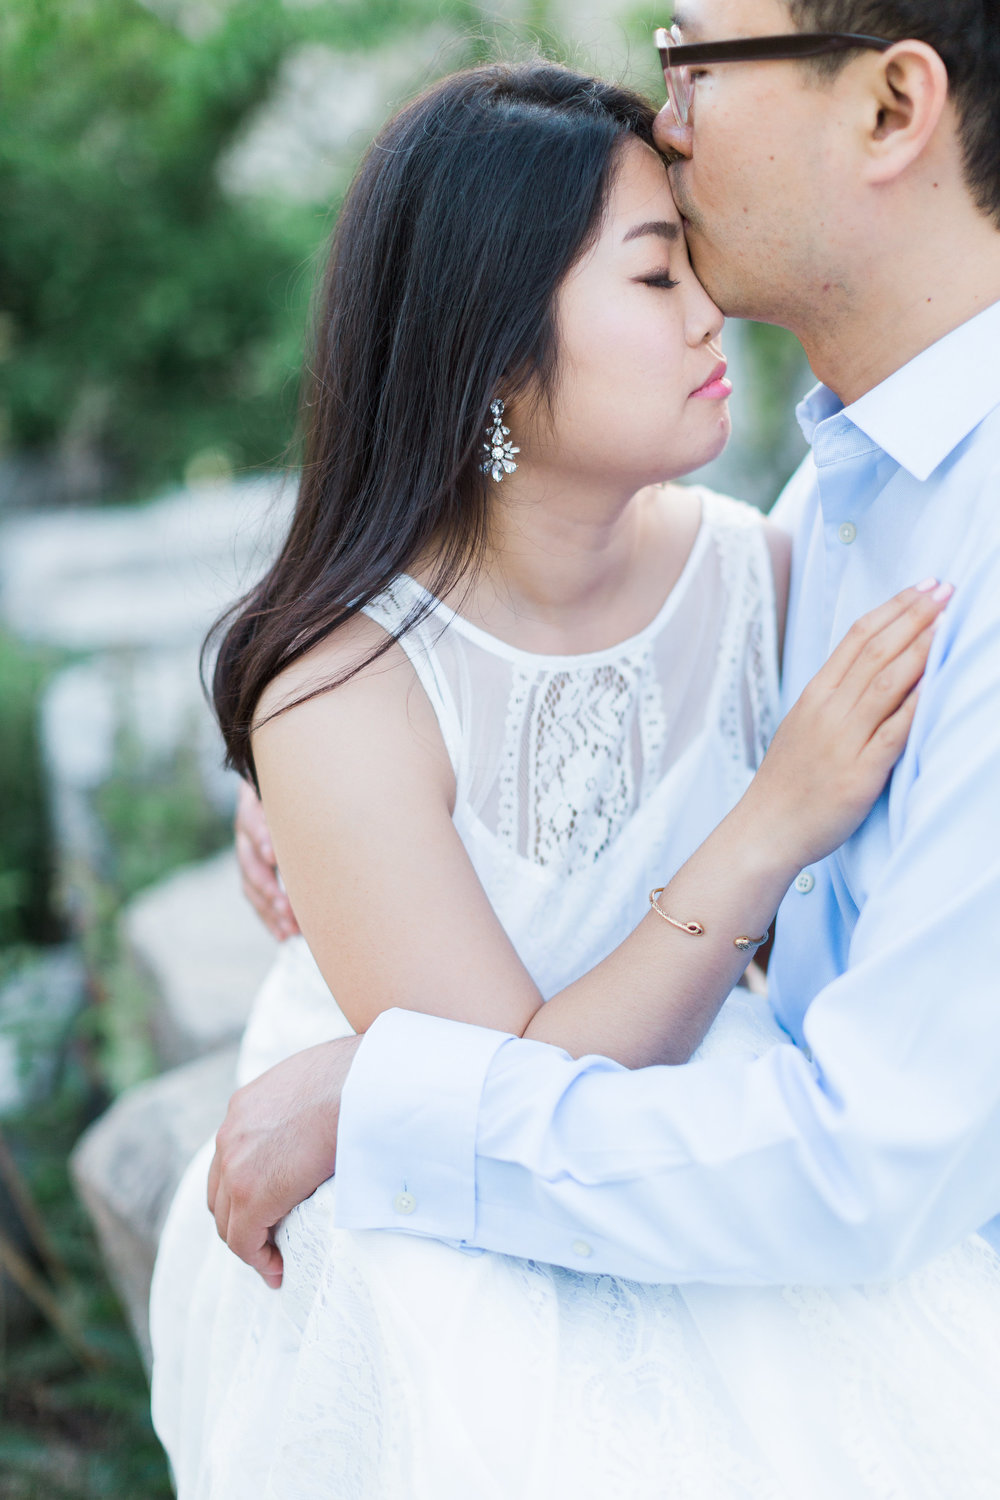 ScarboroughBluffsEngagementSession-1789.jpg